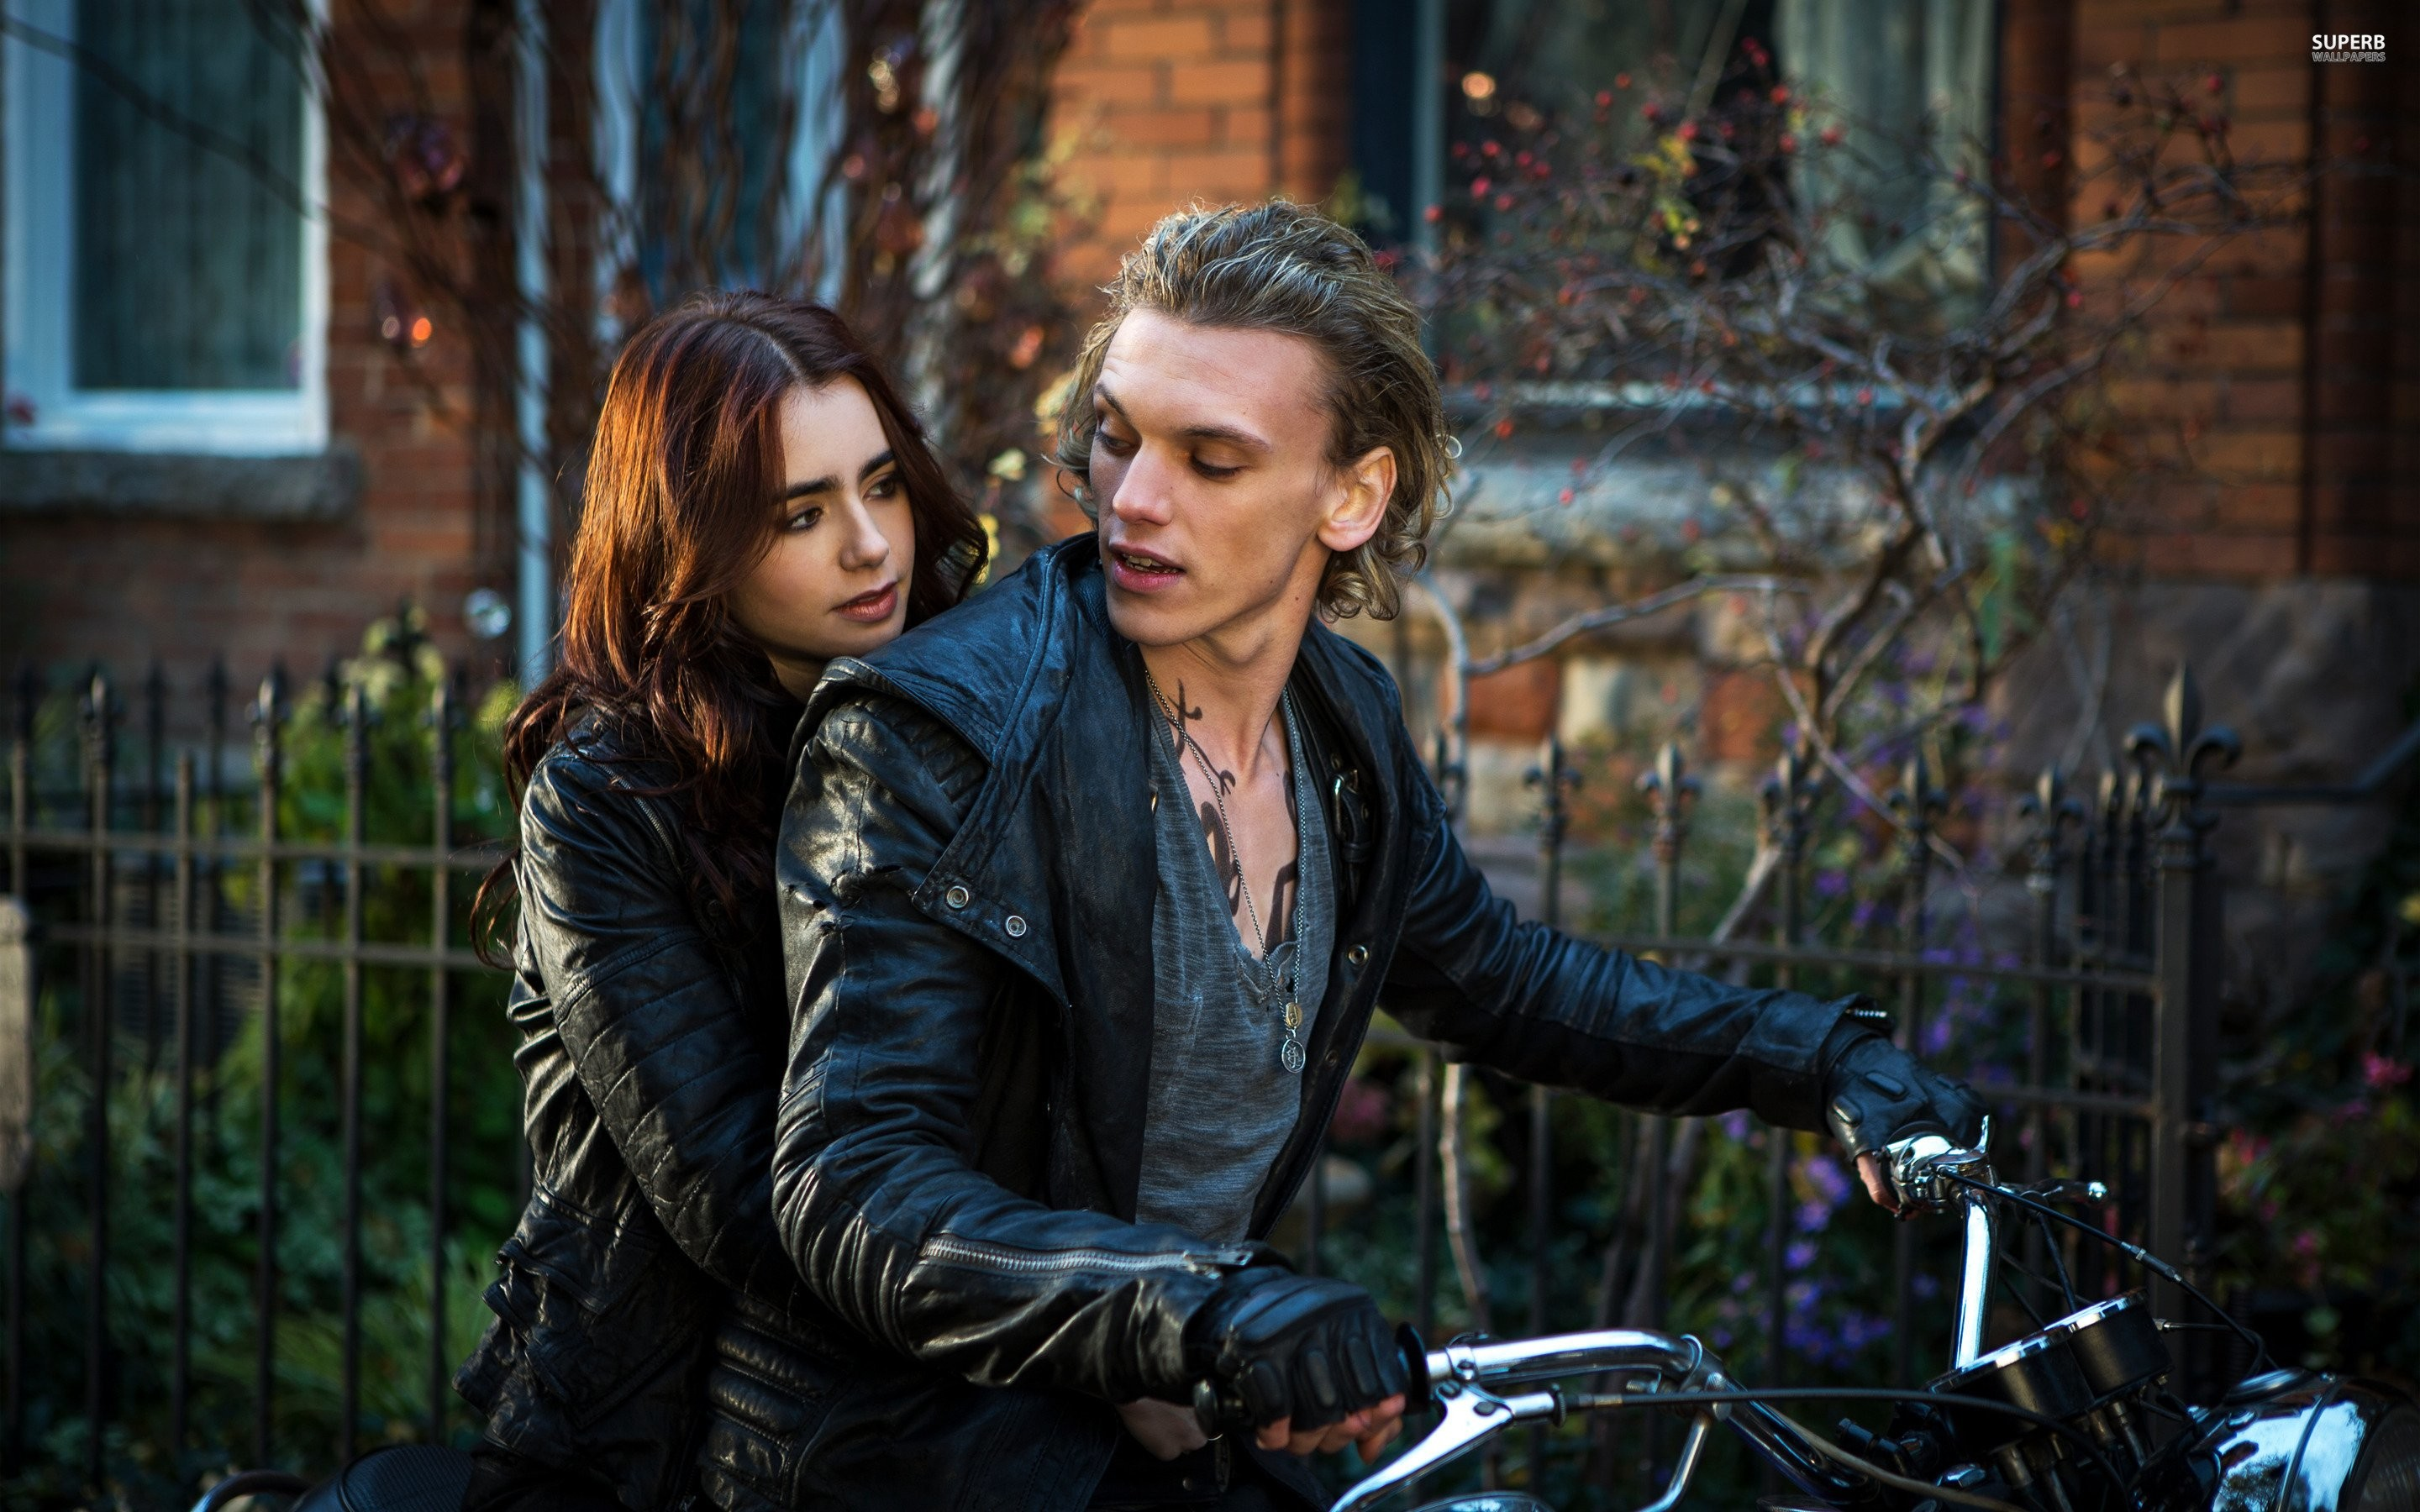 2880x1800 Clary And Jace - The Mortal Instruments City Of Bones Wallpaper